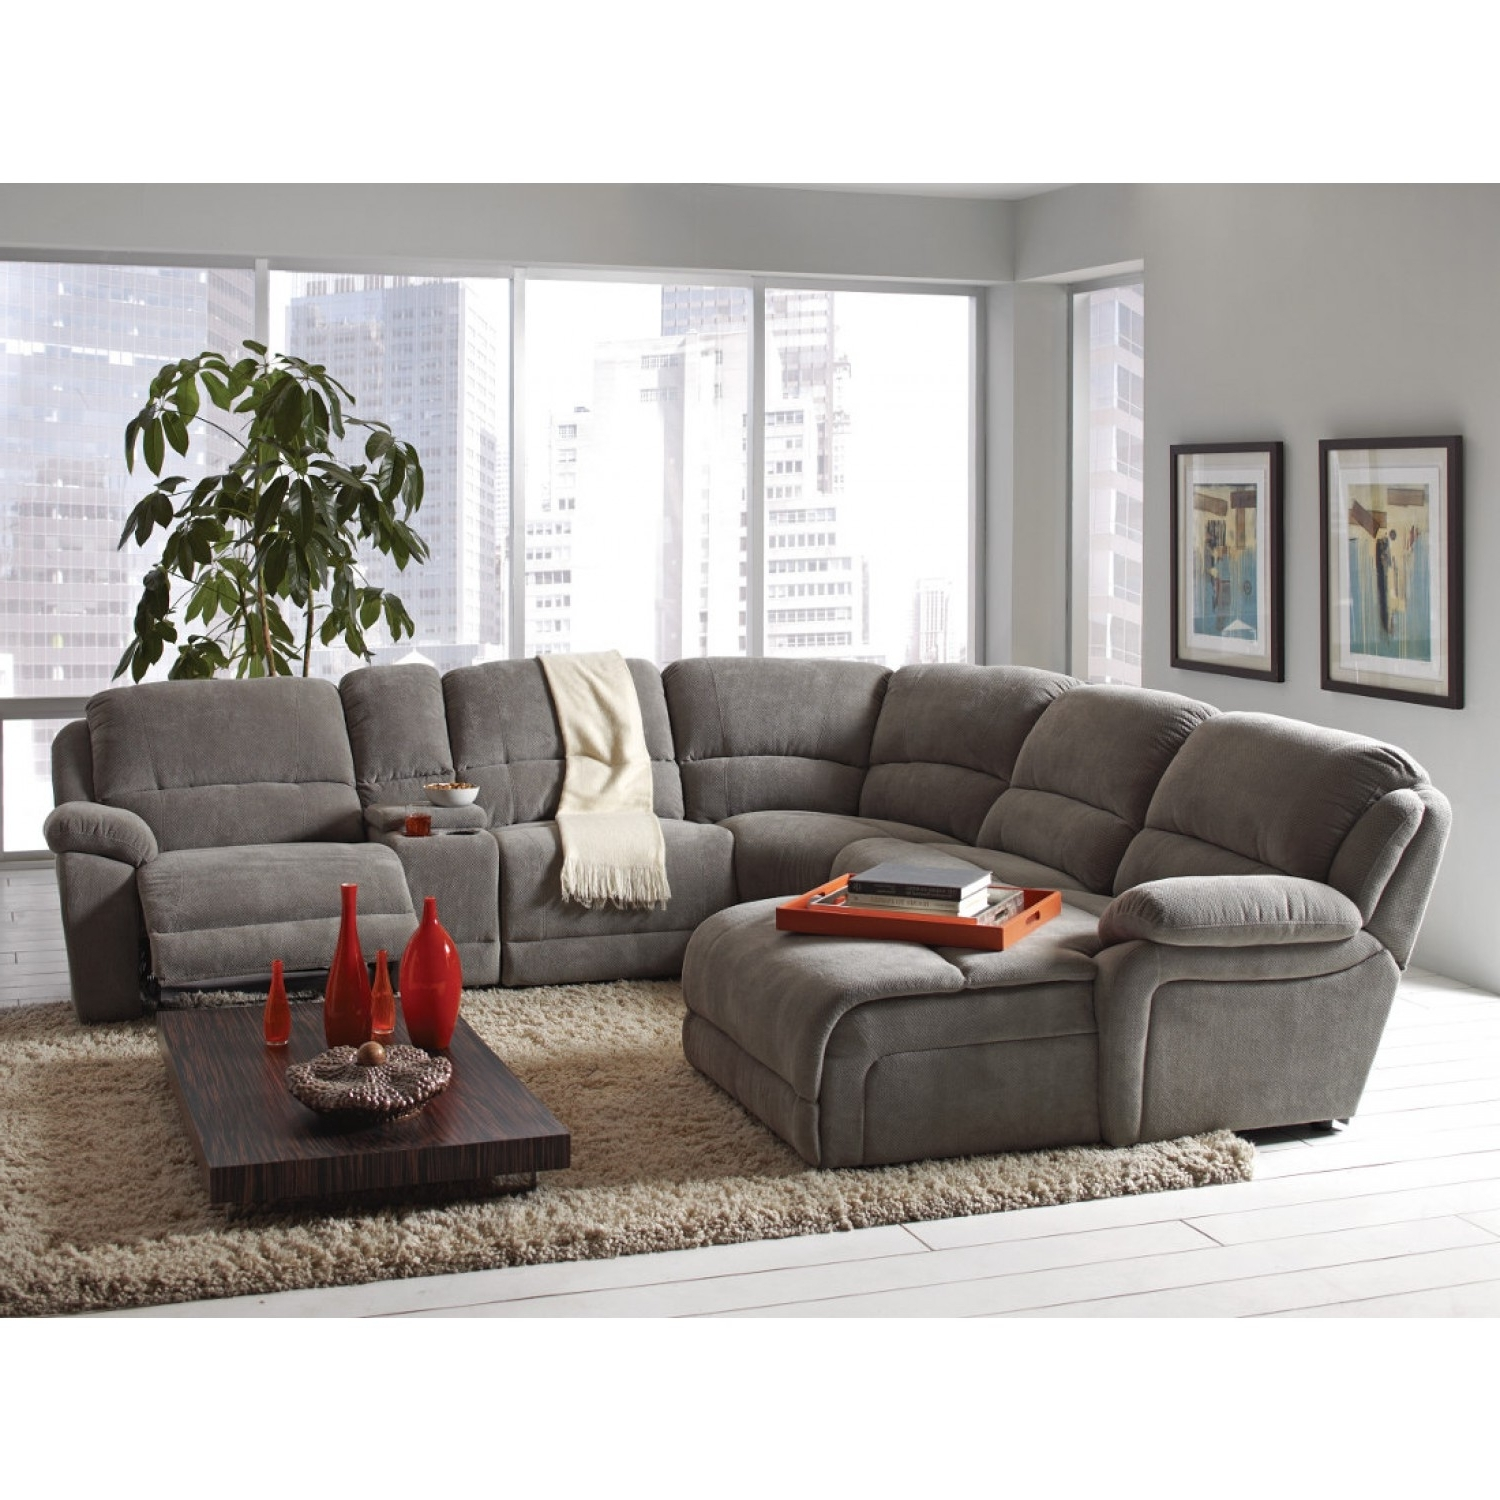 Widely Used Coaster Mackenzie Silver 6 Piece Reclining Sectional Sofa With With Kansas City Sectional Sofas (View 15 of 15)